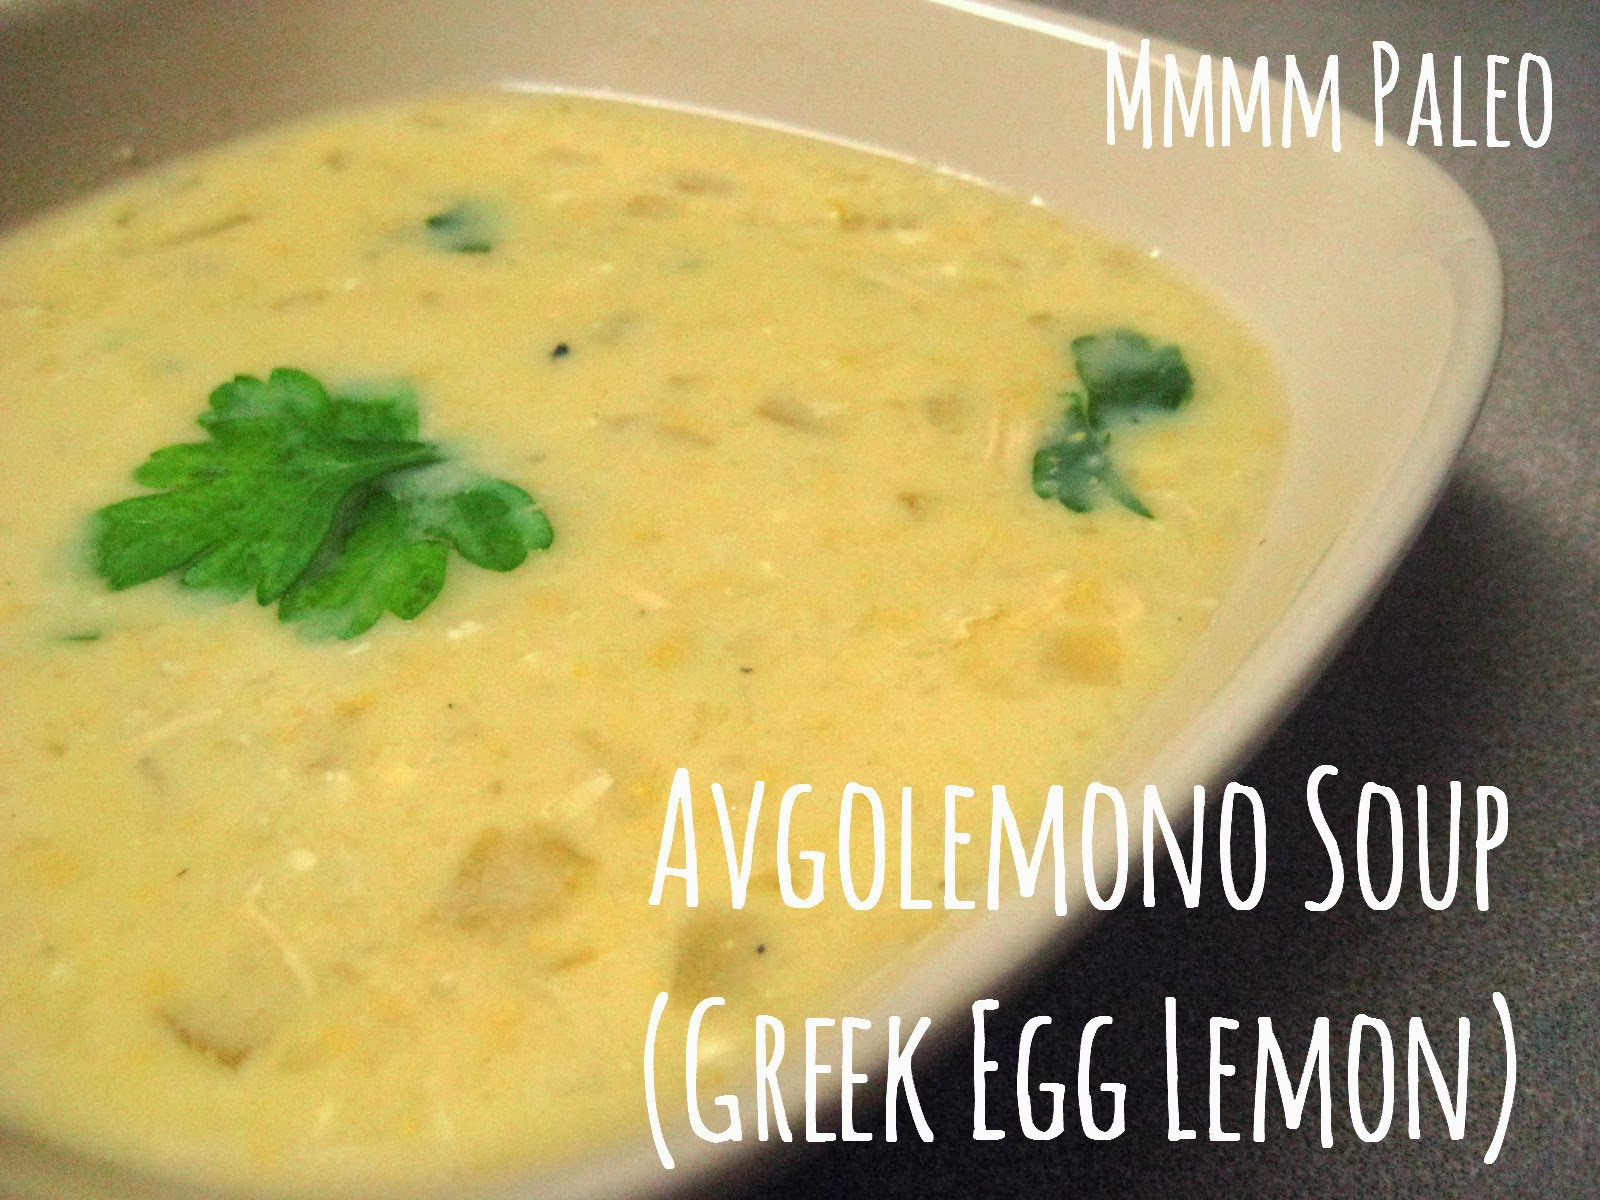 Mmmm Paleo: Avgolemono (Greek Egg Lemon) Soup